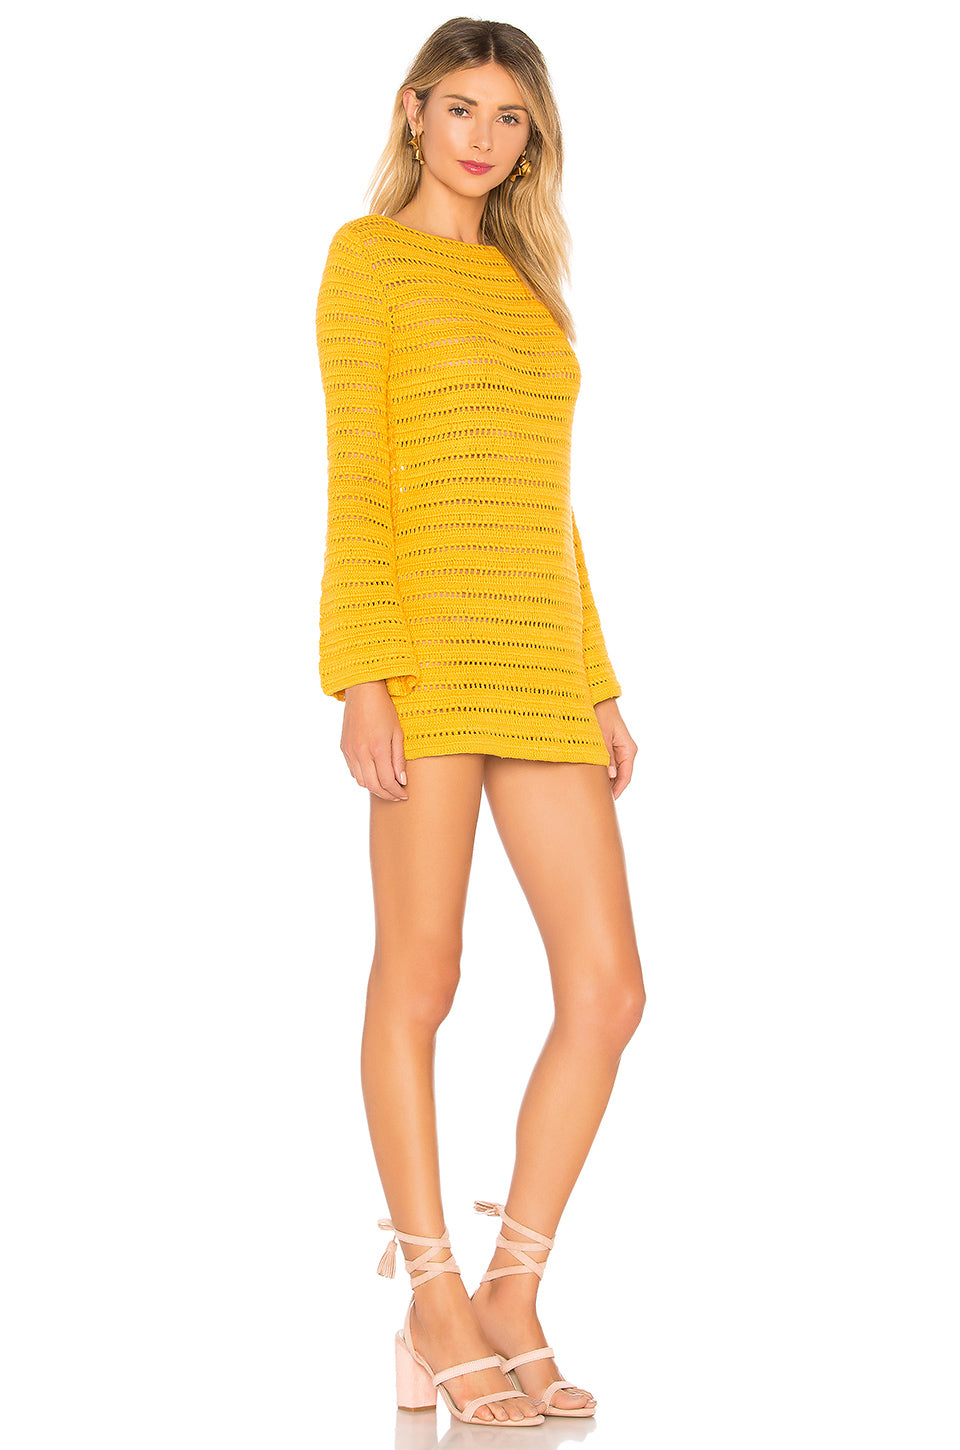 Amelia Dress in Canary Yellow | Lovers + Friends - Lovers + Friends